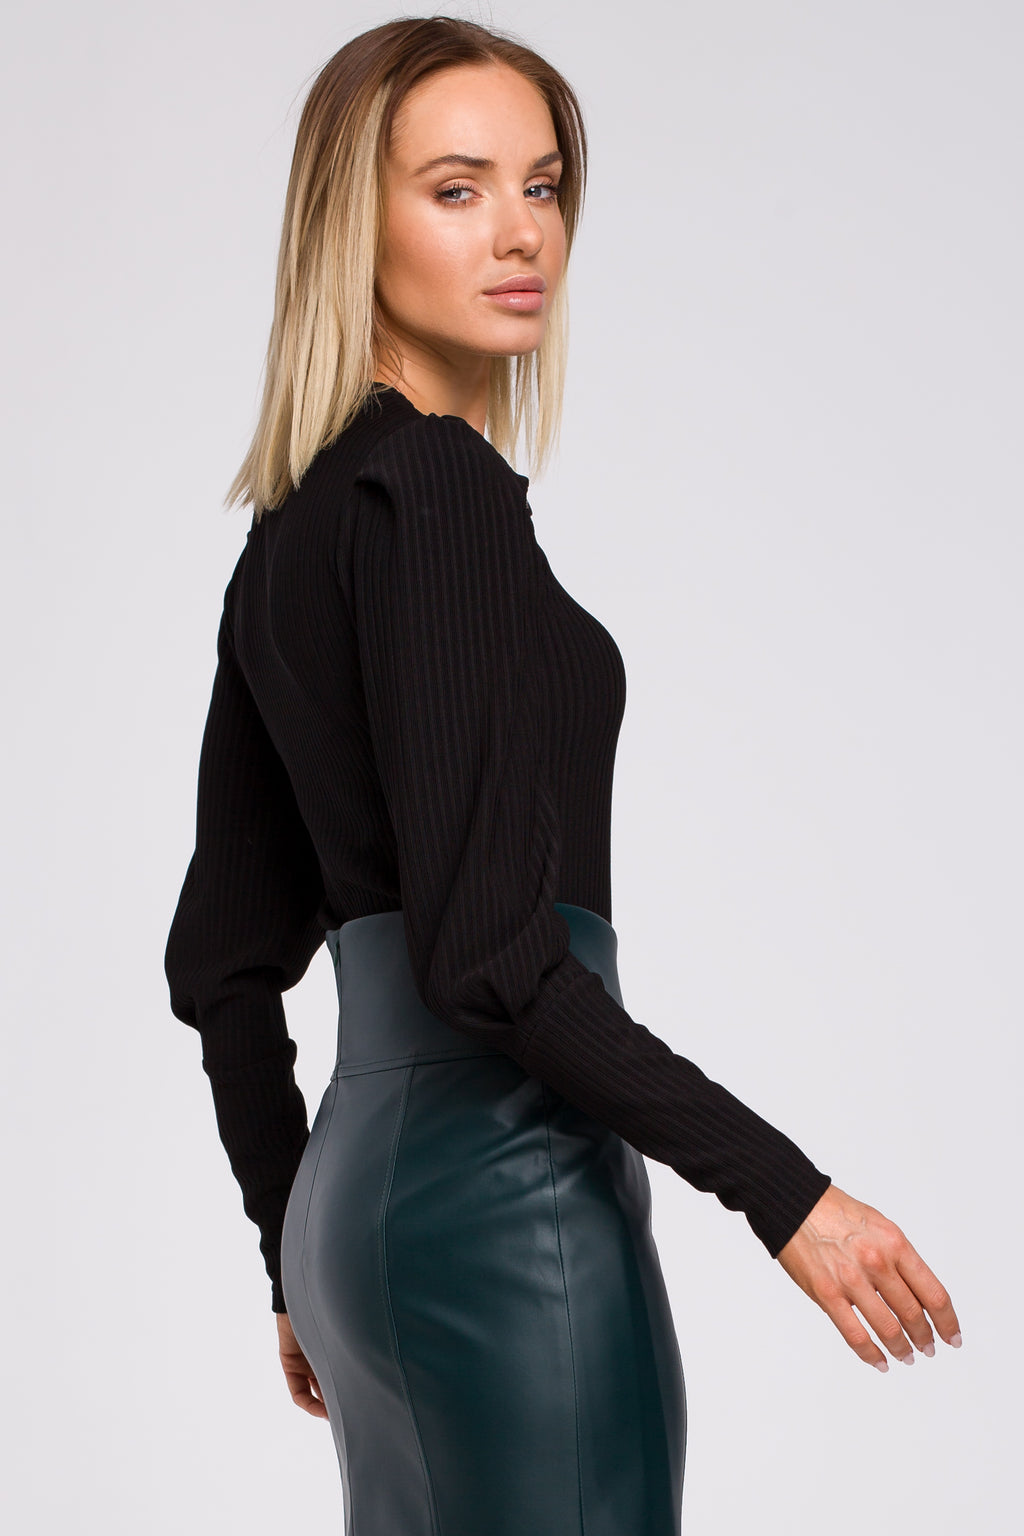 Black Ribbed Blouse With Decorative Buttons - So Chic Boutique